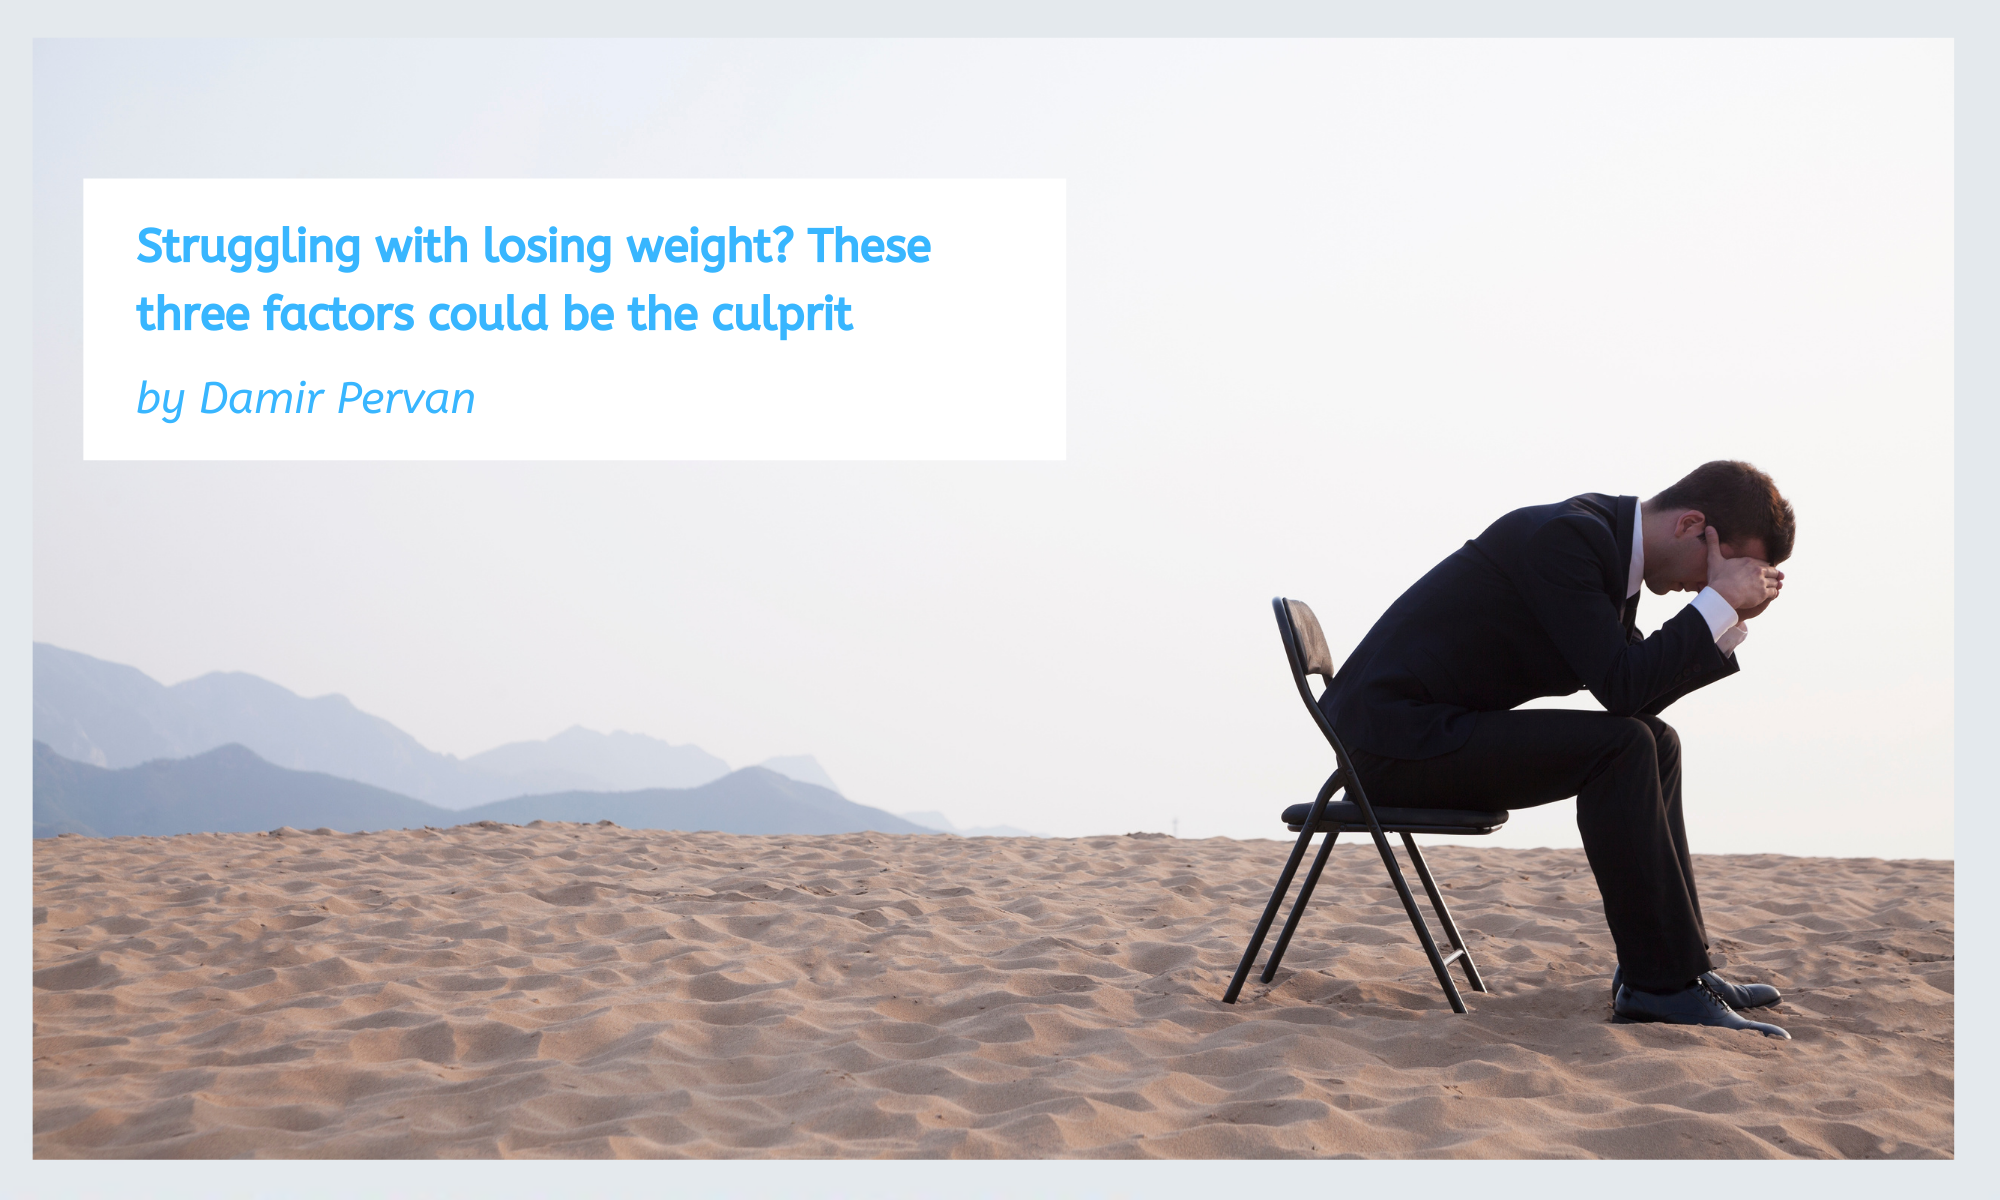 Struggling with losing weight These three factors could be the culprit